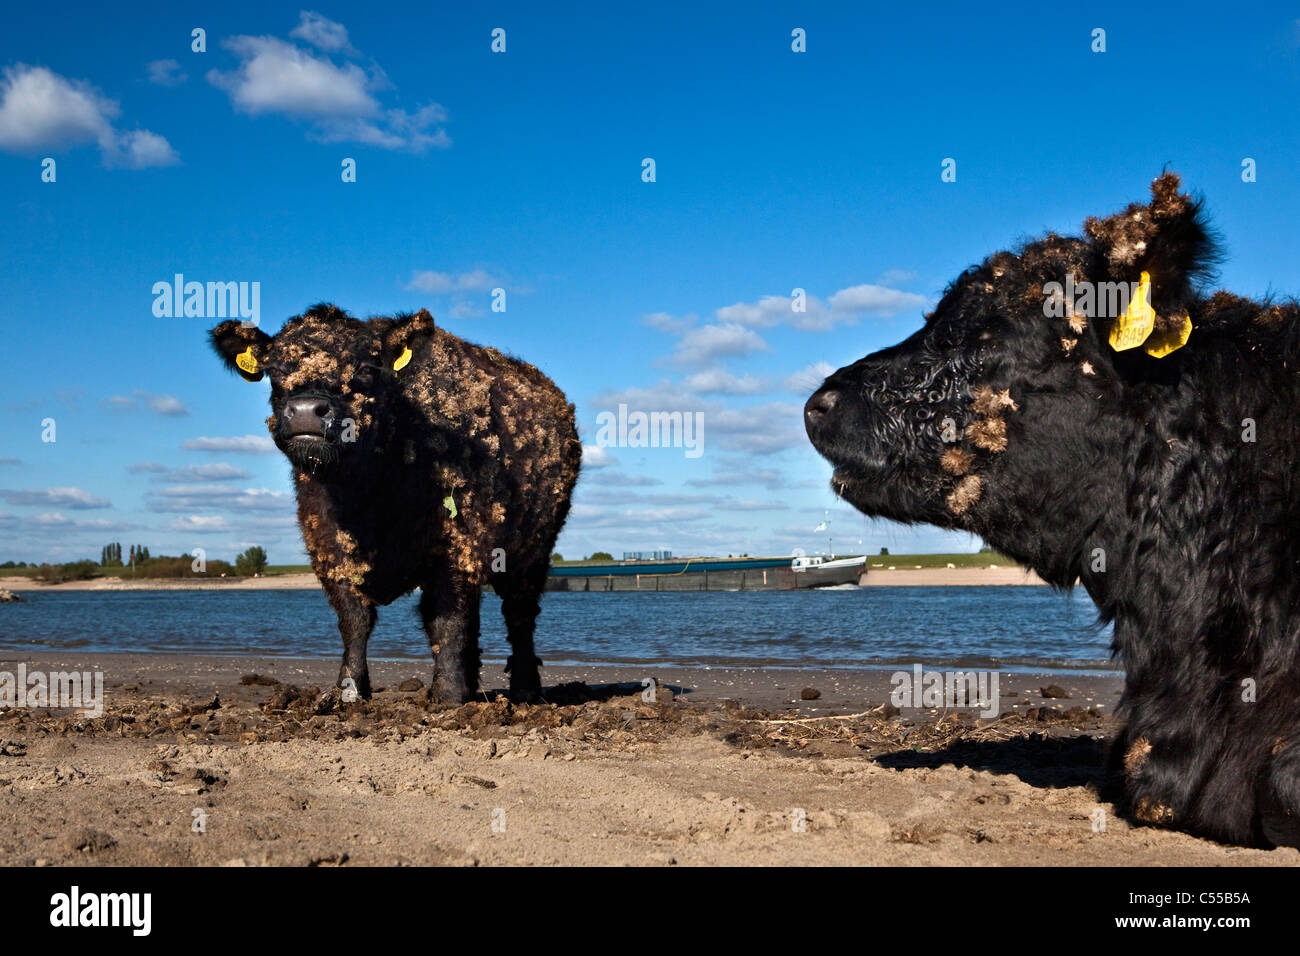 The Netherlands, Ooij, Ooij-polder. Galloway cow. Background: Cargo boat on Waal river. - Stock Image